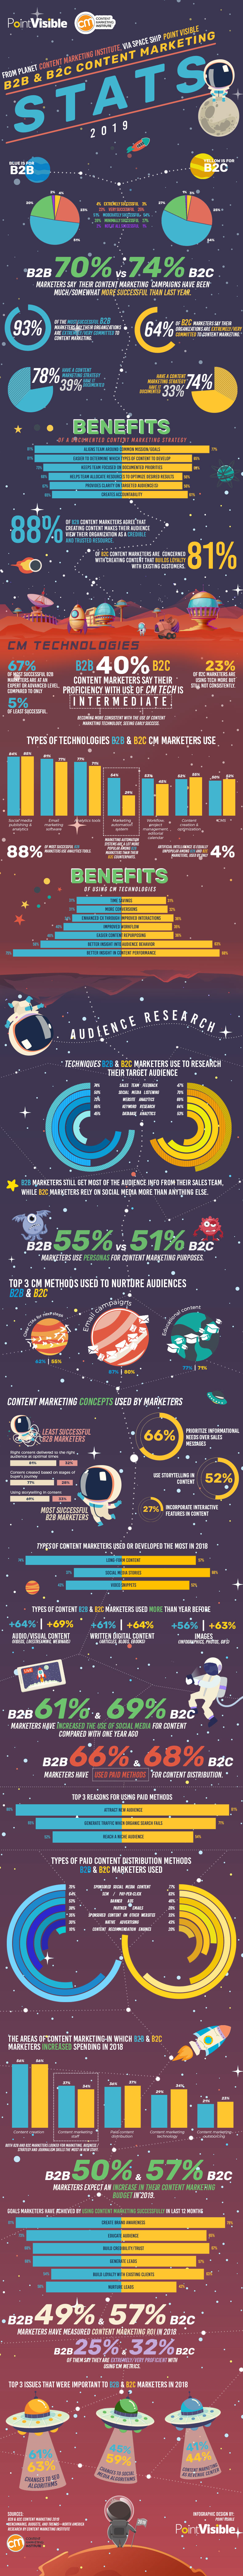 Infographic outlines a range of content marketing stats